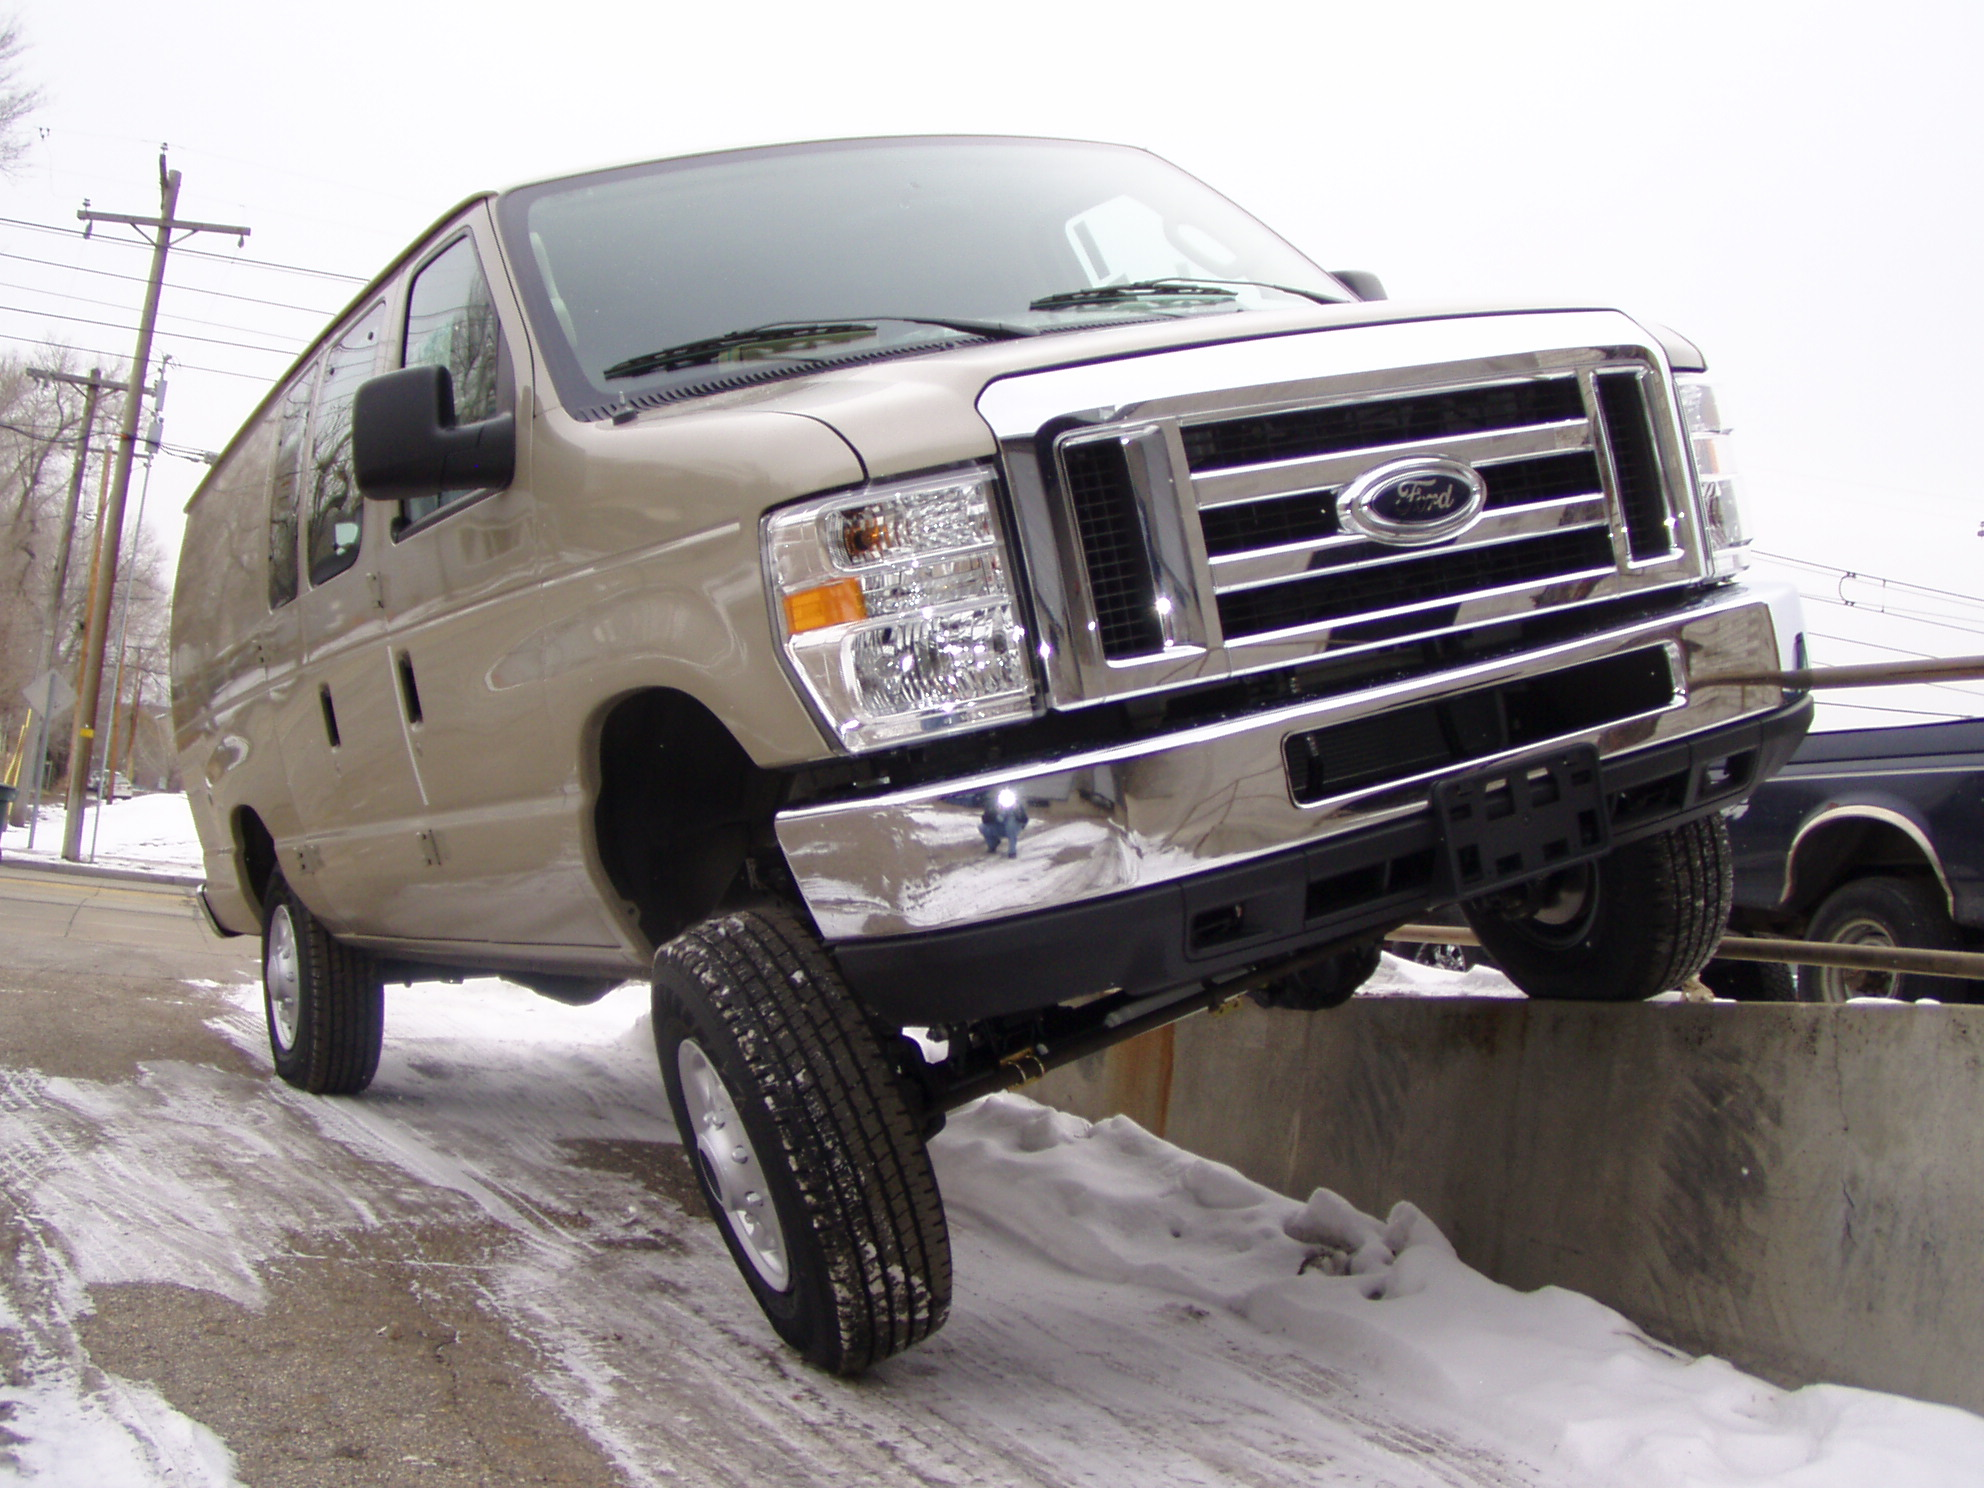 Ford 4x4 Van Driving On Curb